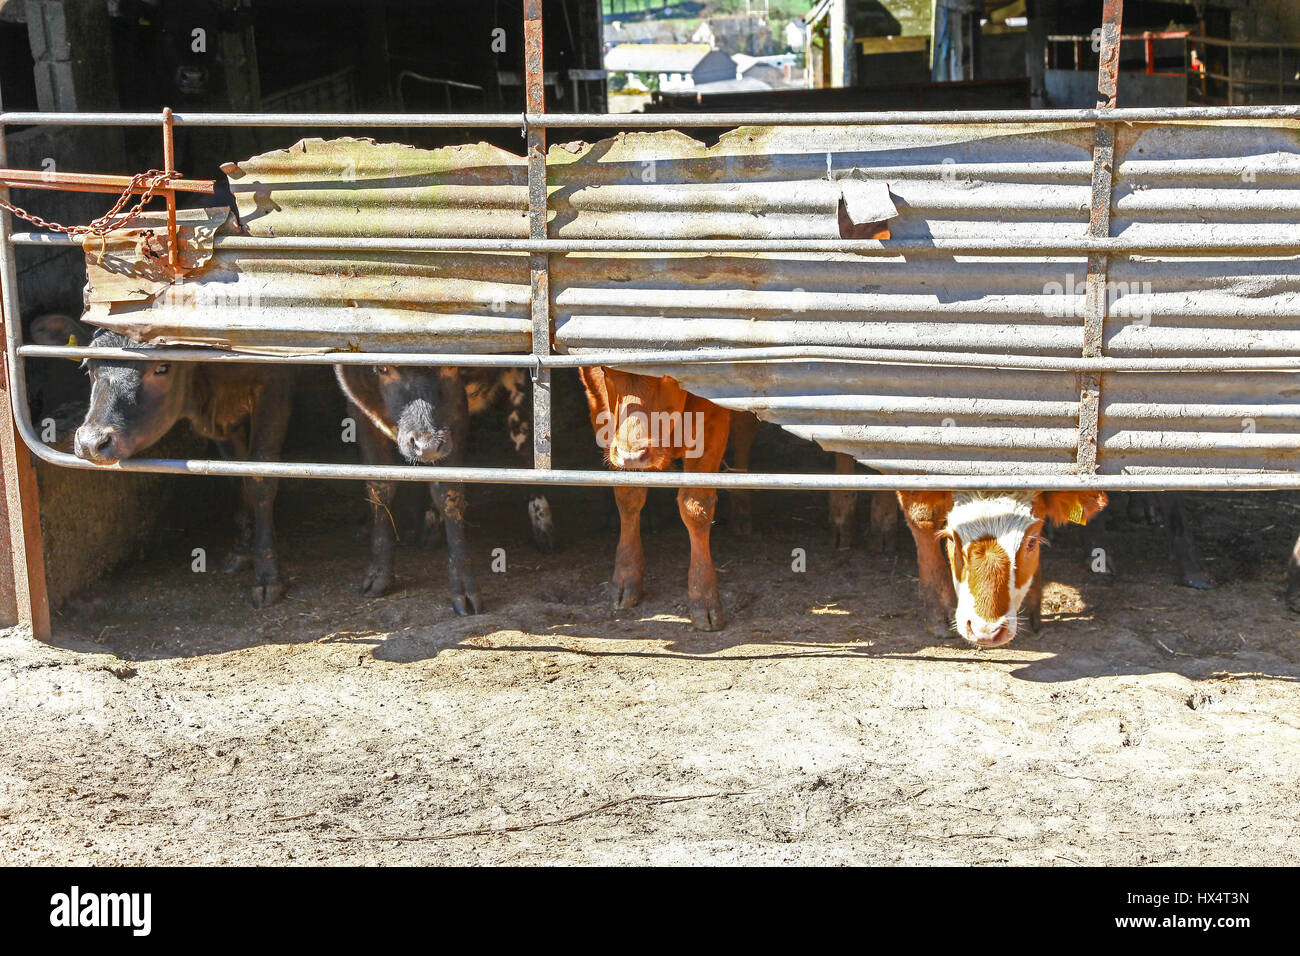 Young inquisitive cows looking under galvanised metal sheeting on a farm - Stock Image